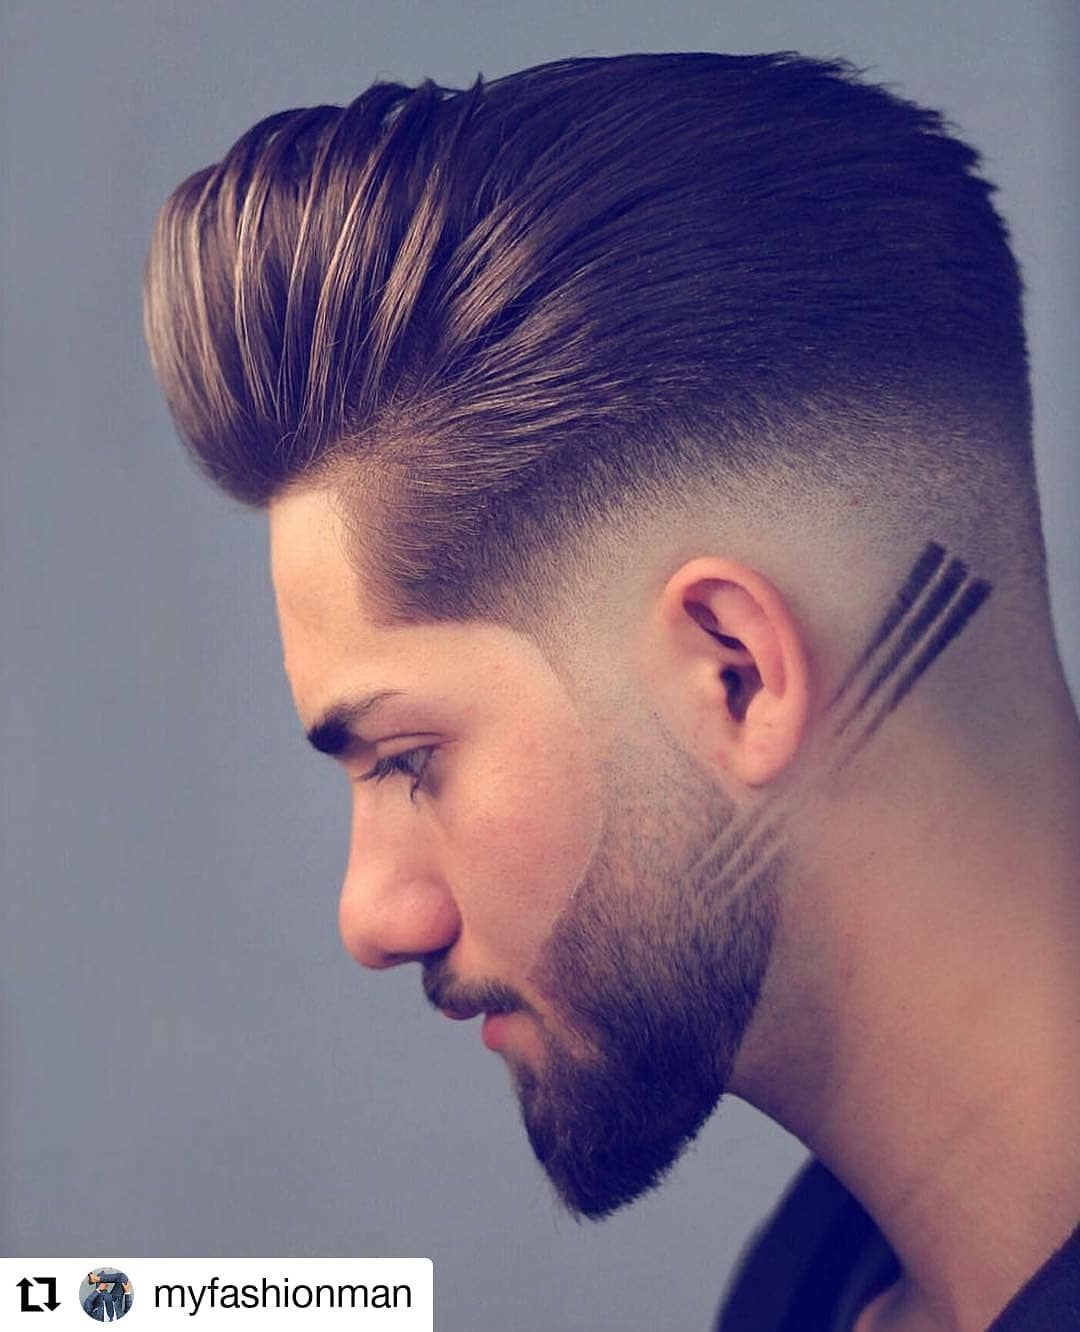 New Fire Hairstyle Men Haircut Styles Beard Styles Haircuts For Men